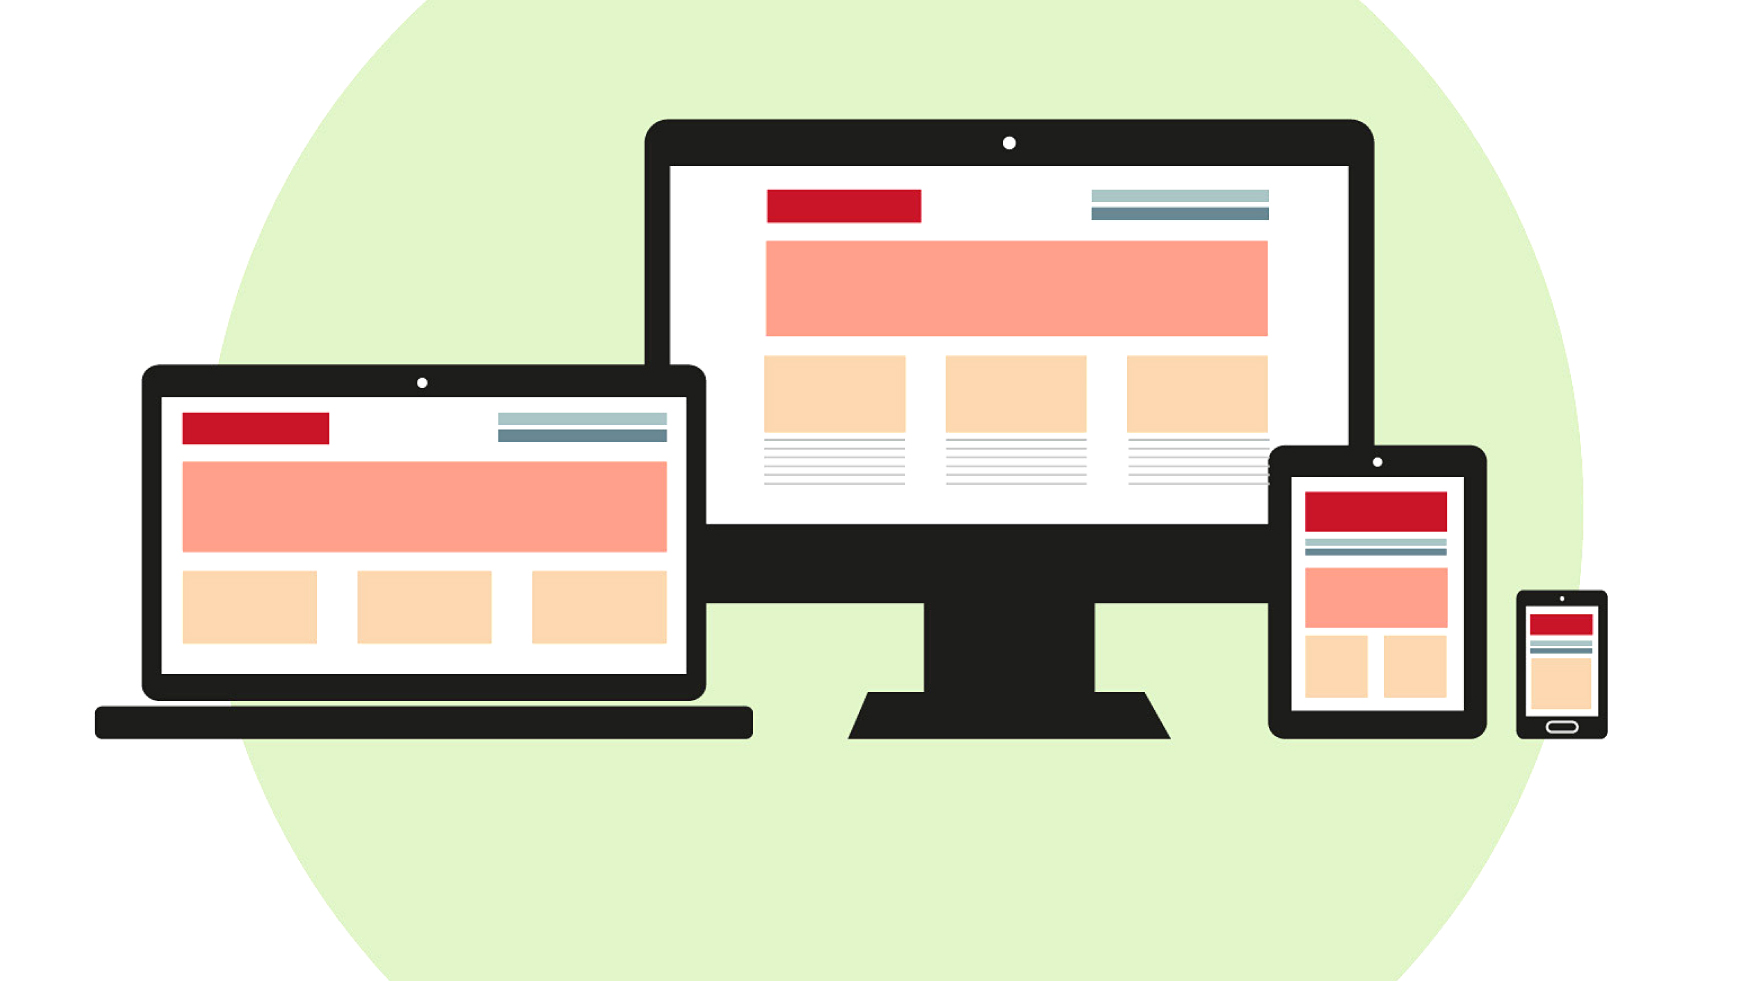 responsive-design-featured-image